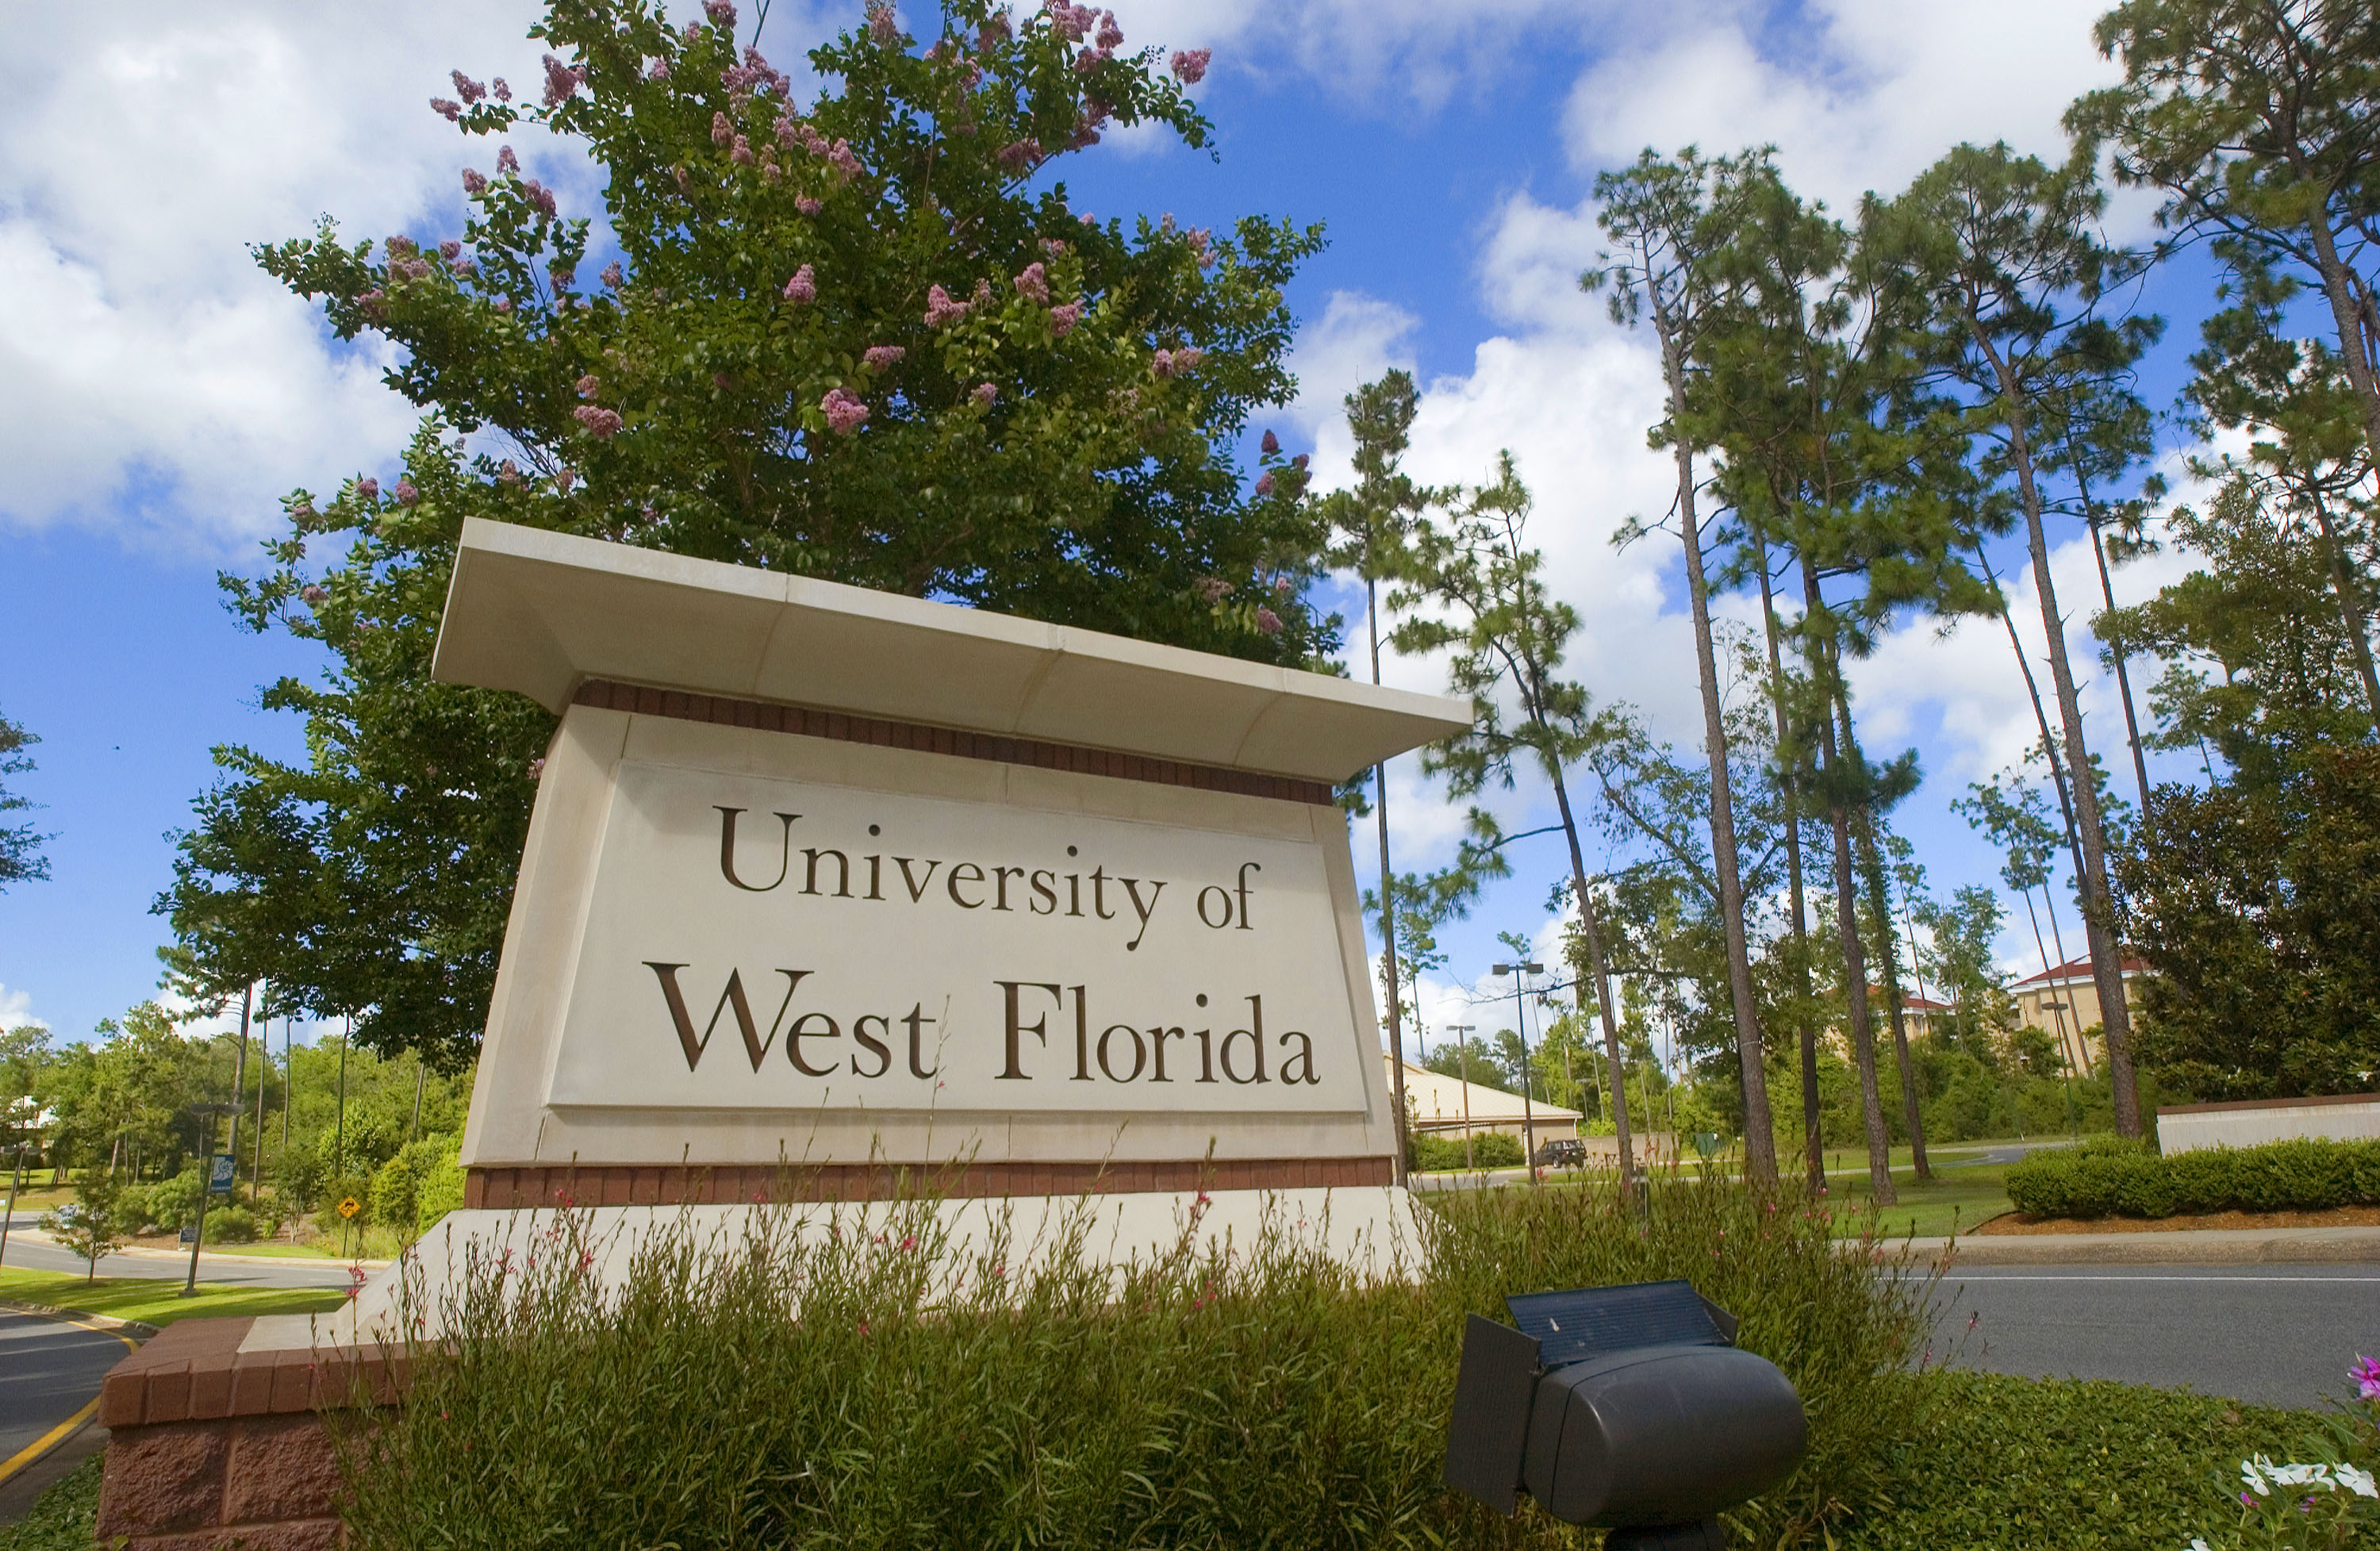 University of West Florida sign